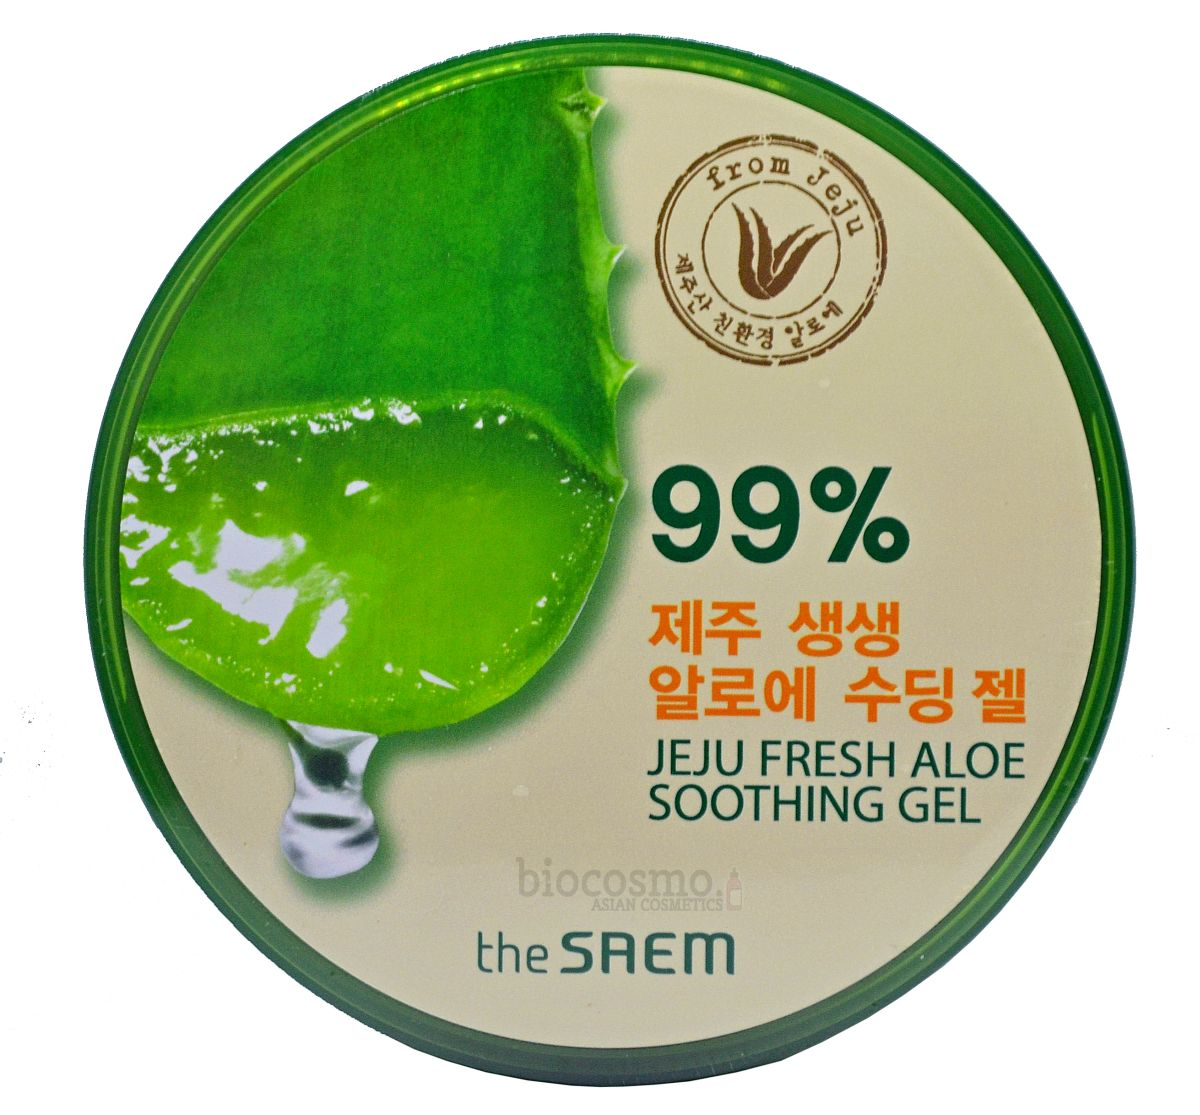 Гель для тела с алоэ The Saem Jeju Fresh Aloe Soothing Gel 99% - 300 мл